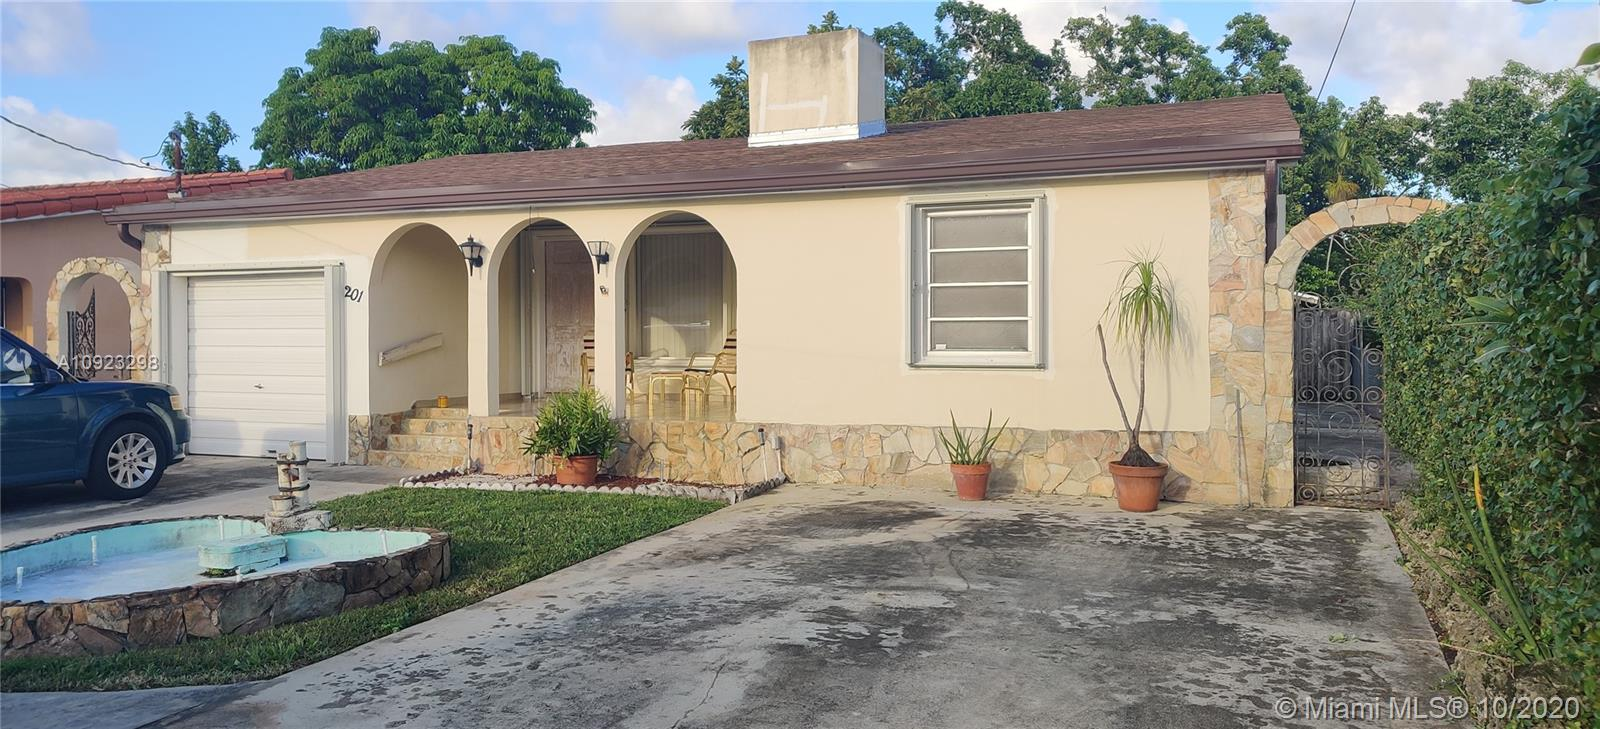 201 SW 48th Ct  For Sale A10923298, FL